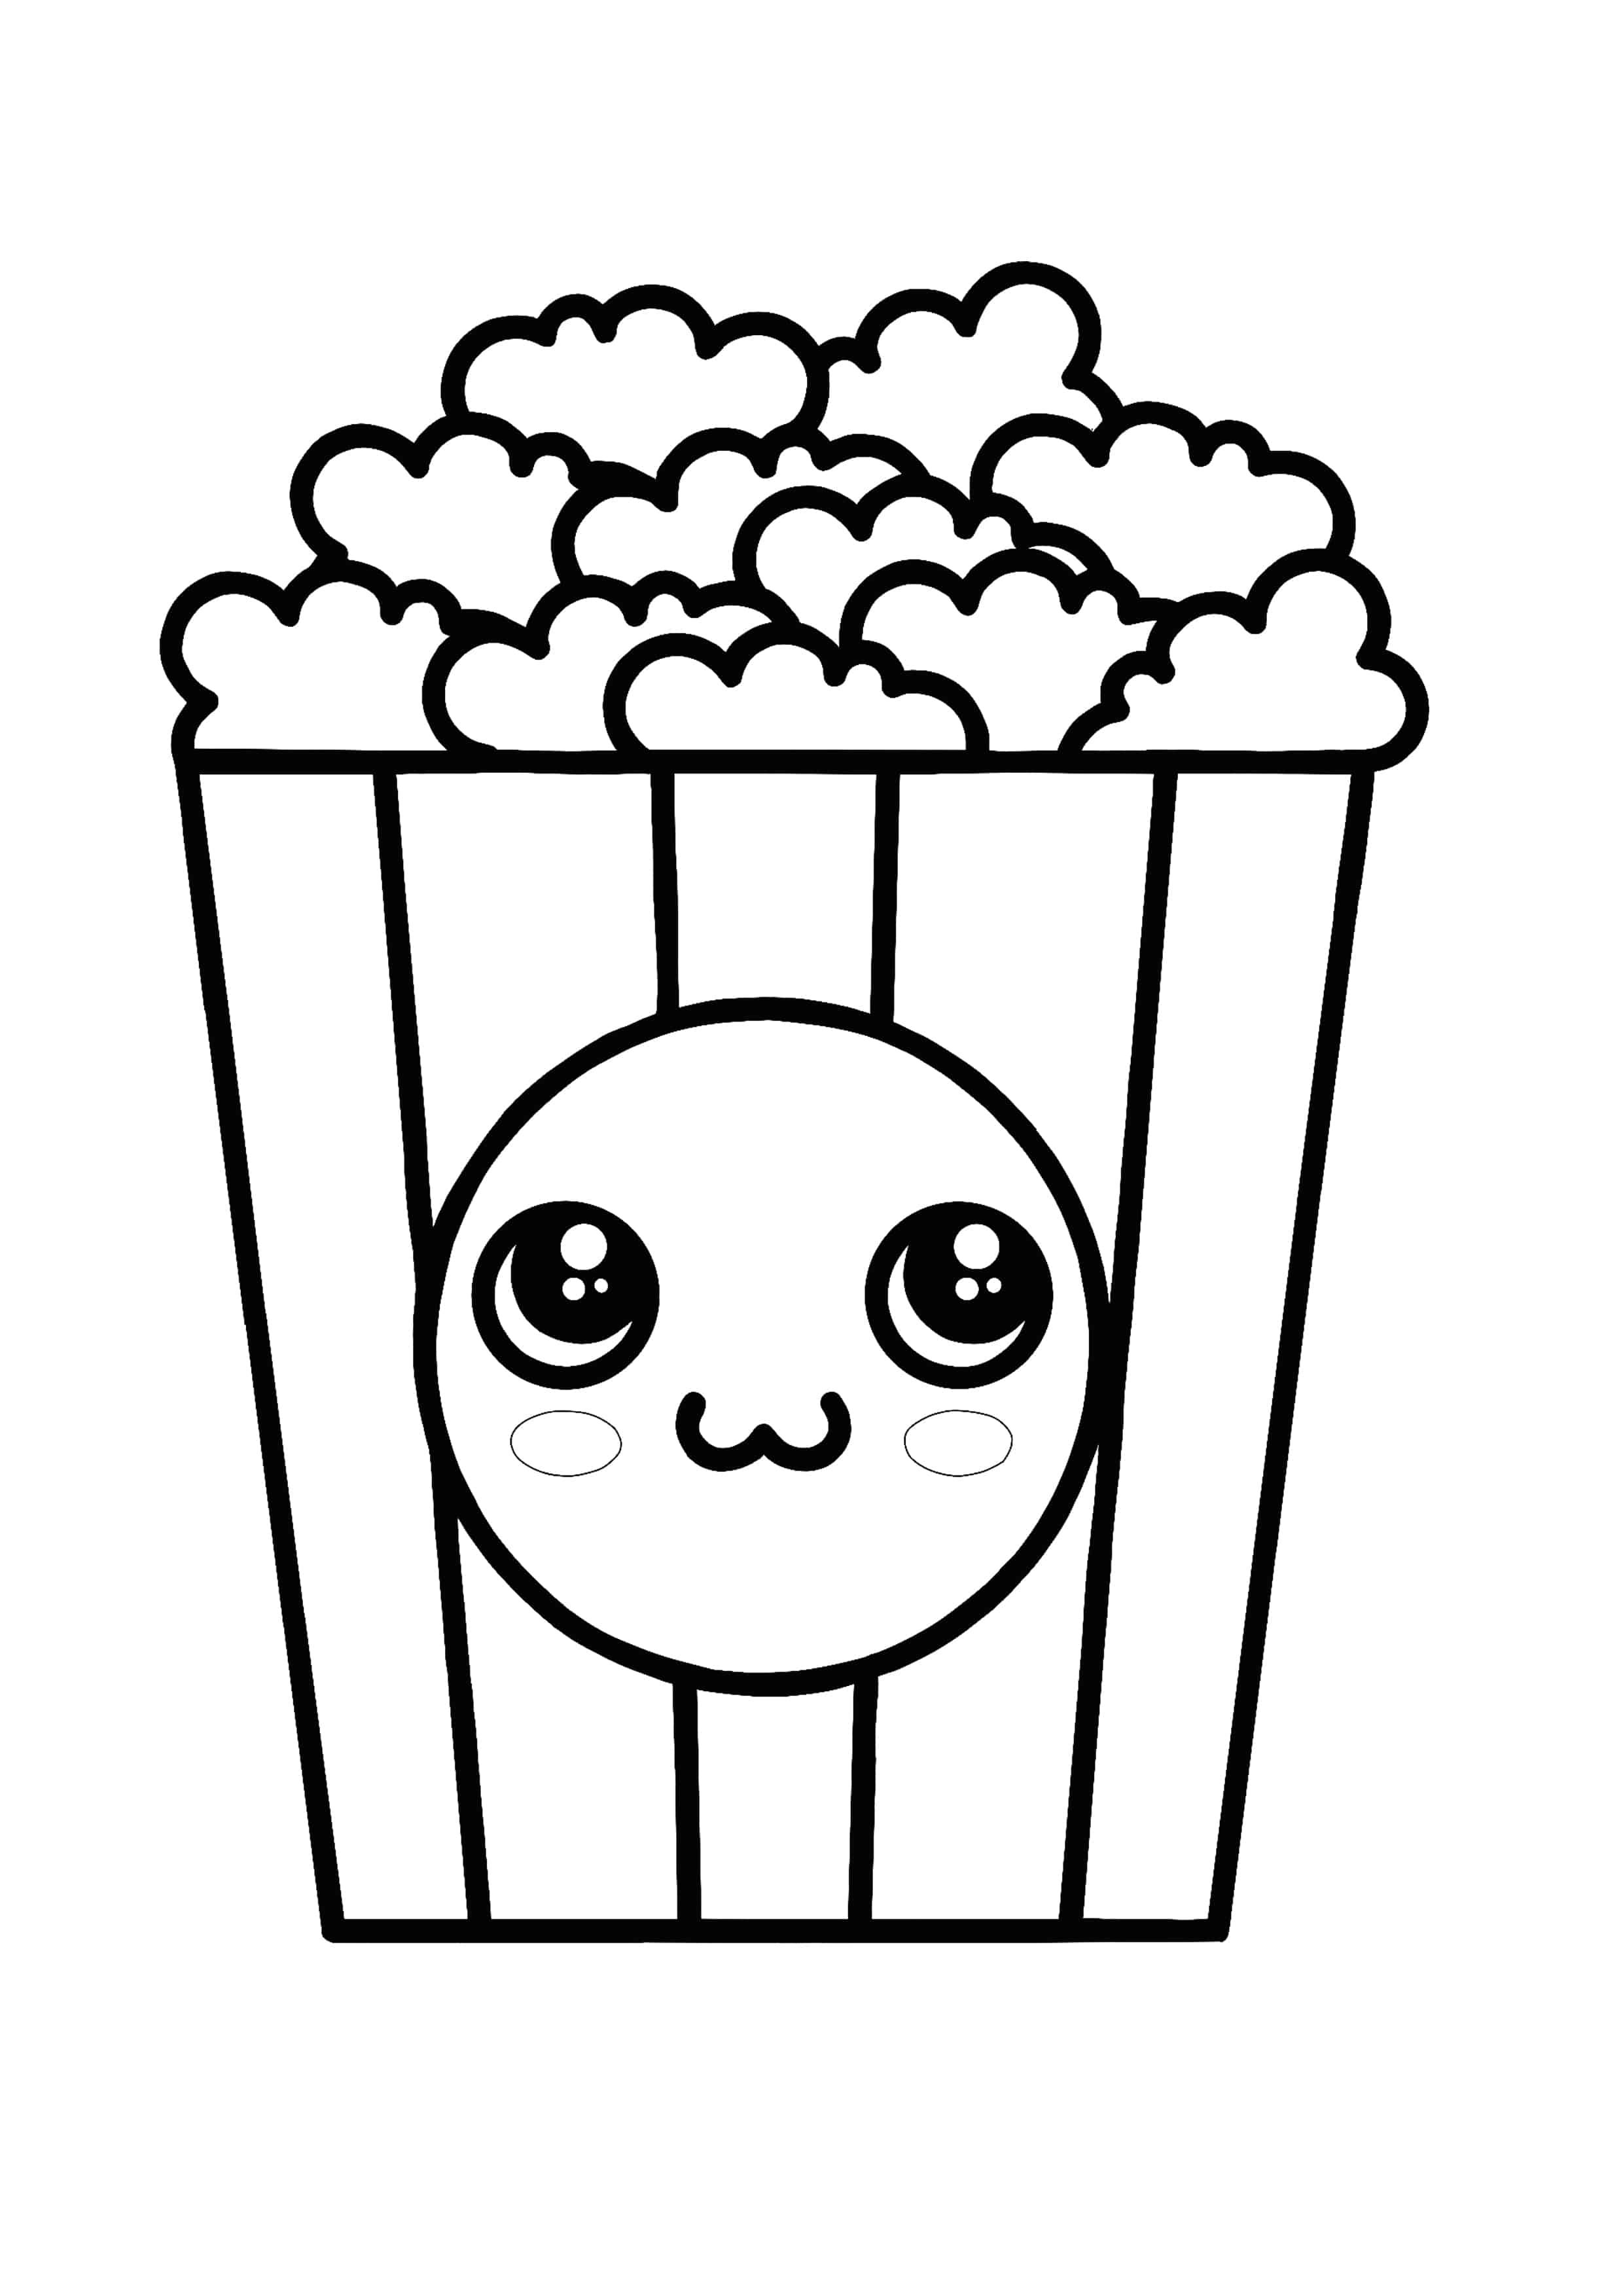 Kawaii Popcorn Coloring Page Coloring Pages Colored Popcorn Free Printable Coloring